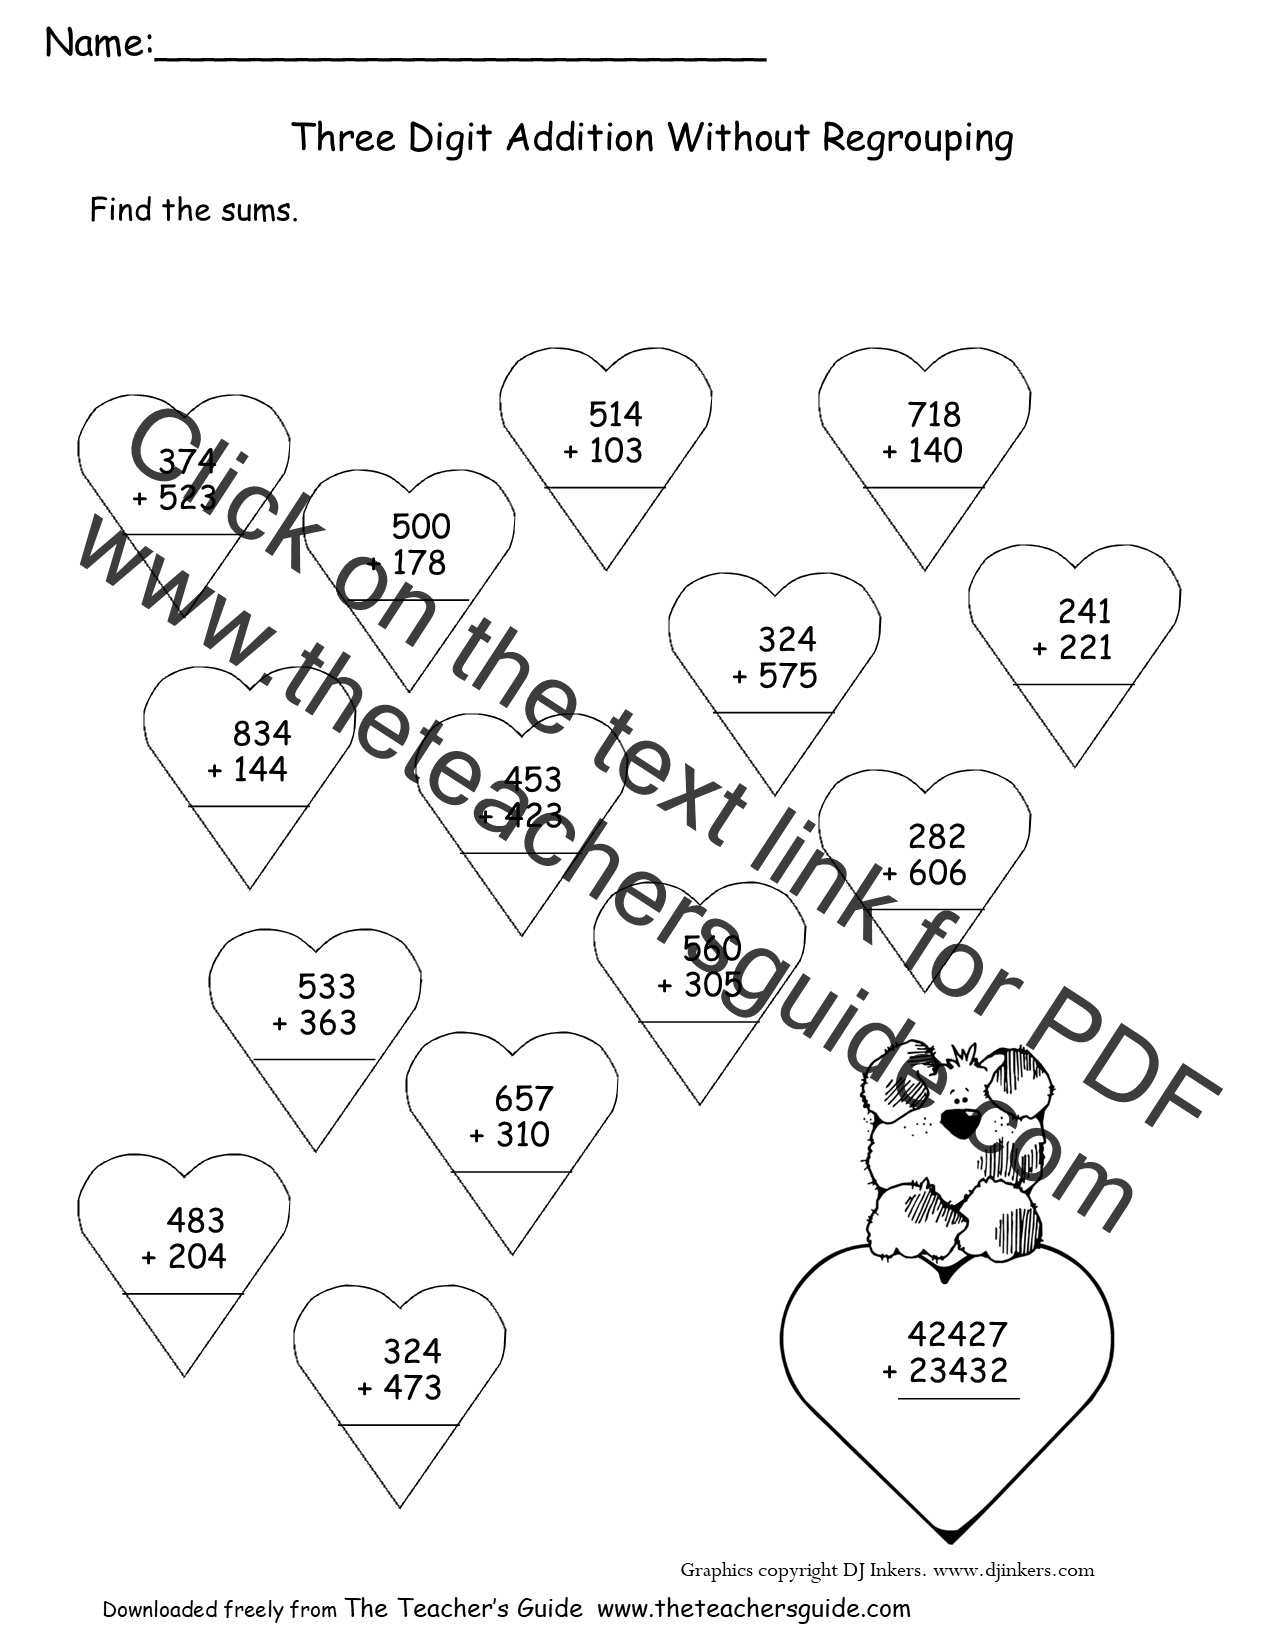 math worksheet : worksheets on subtraction without regrouping  ged  : Two Digit Addition And Subtraction Worksheets